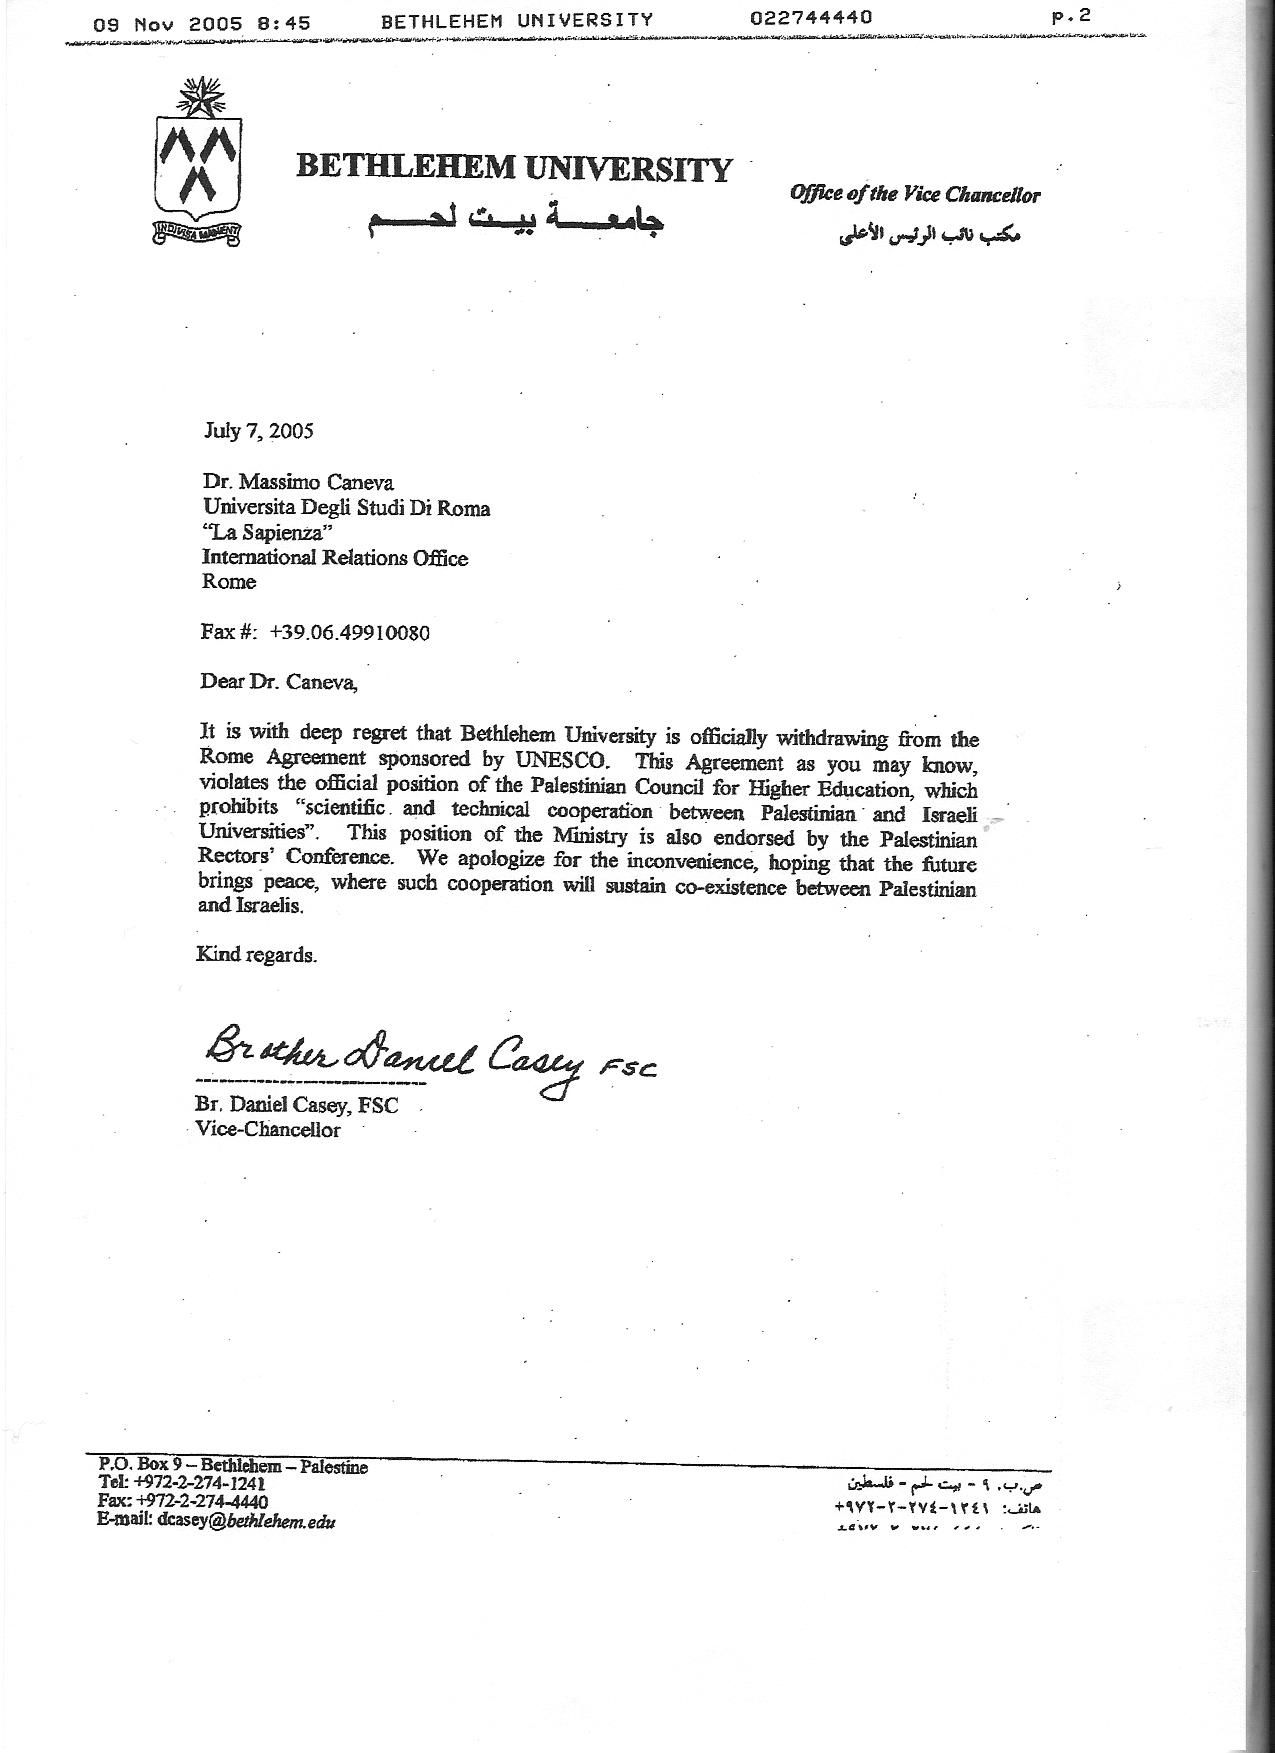 Images For Official Request Letter Formatofficial Letter Business